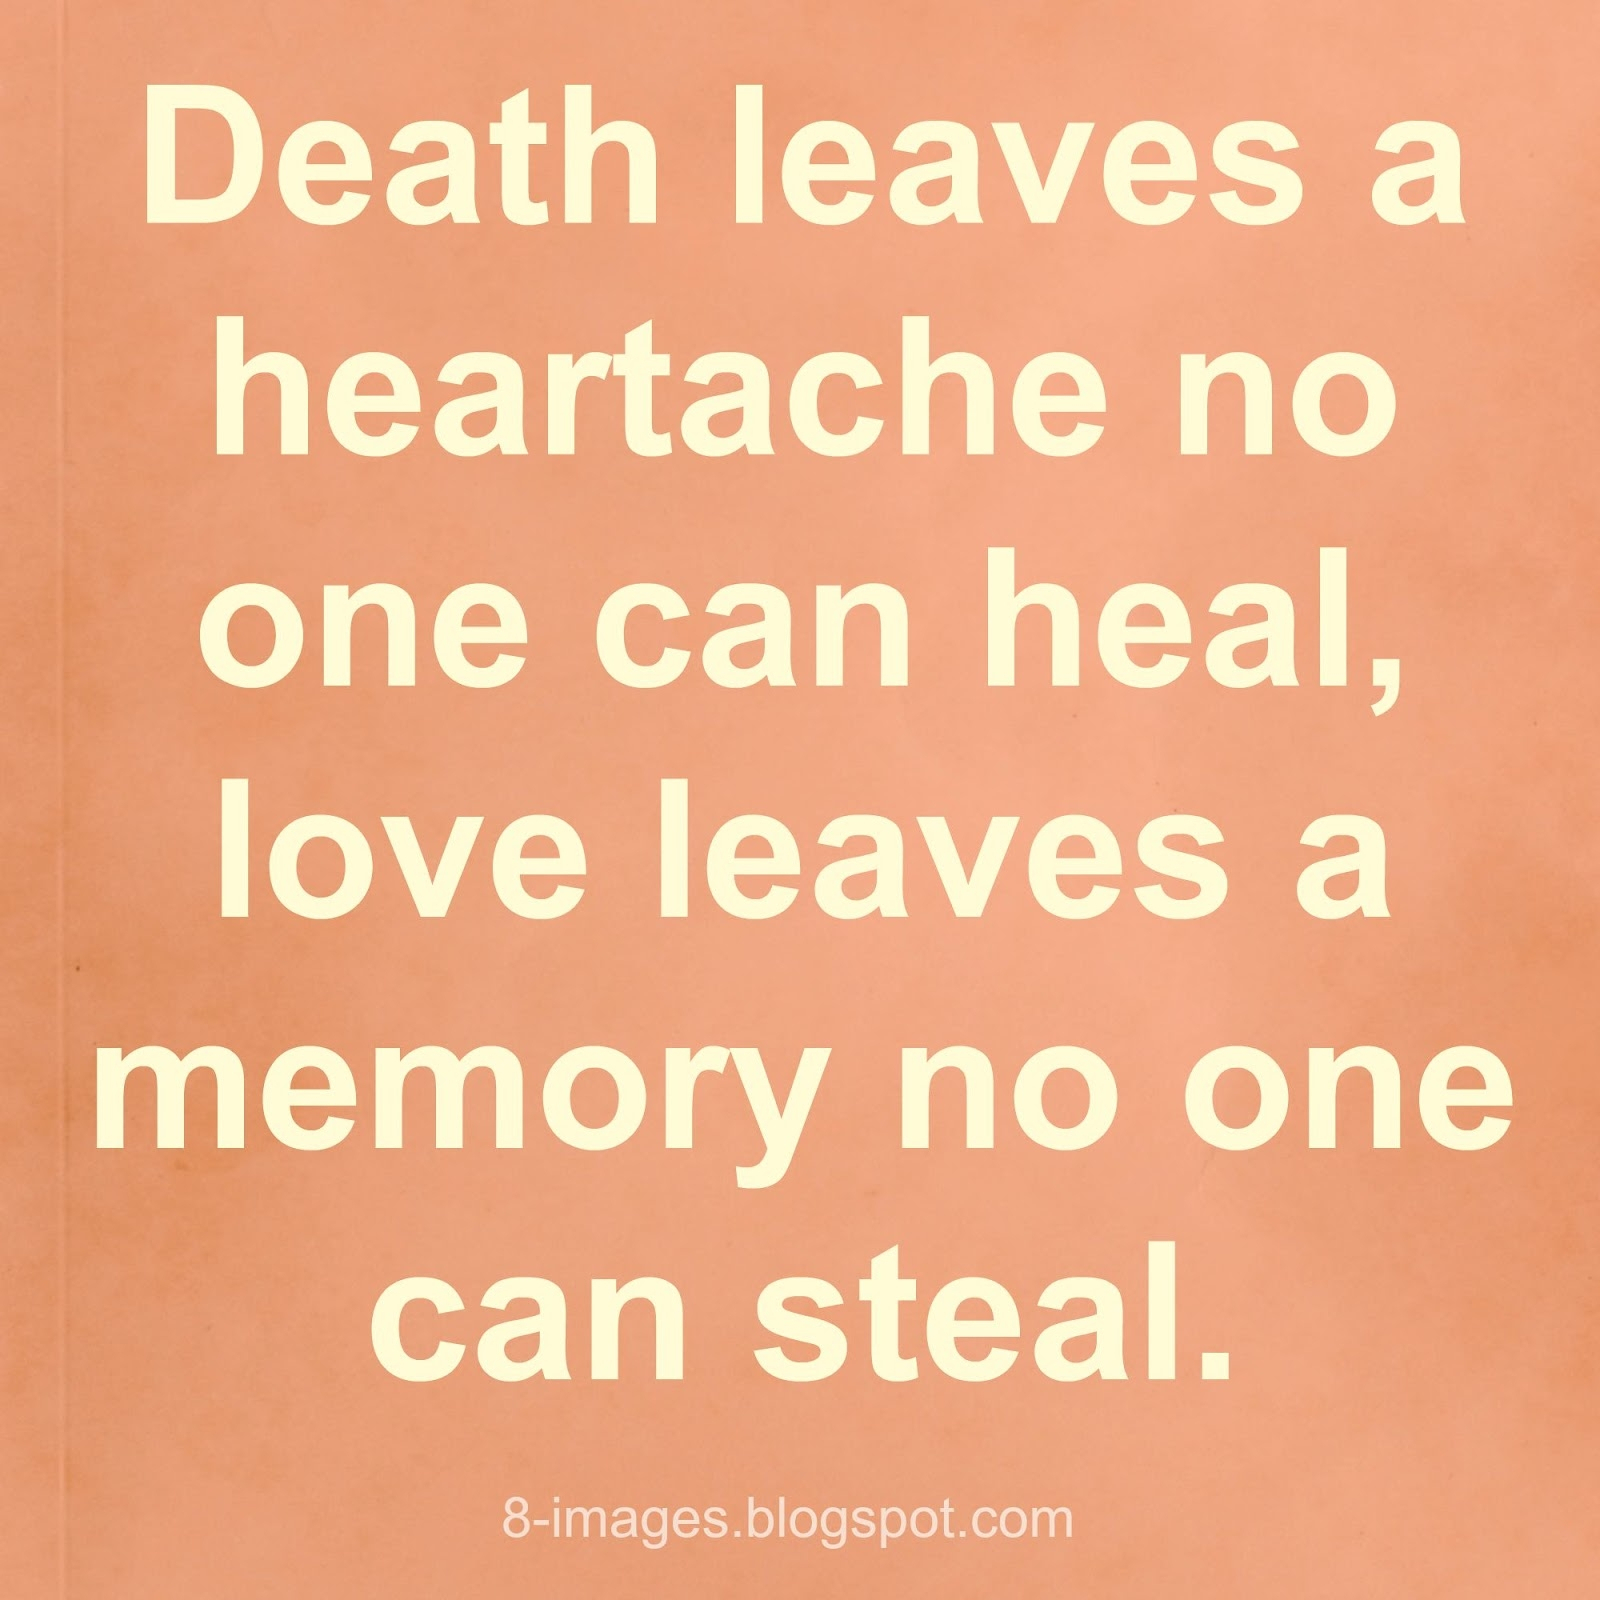 Quotes For Losing A Loved One To Cancer Image 06